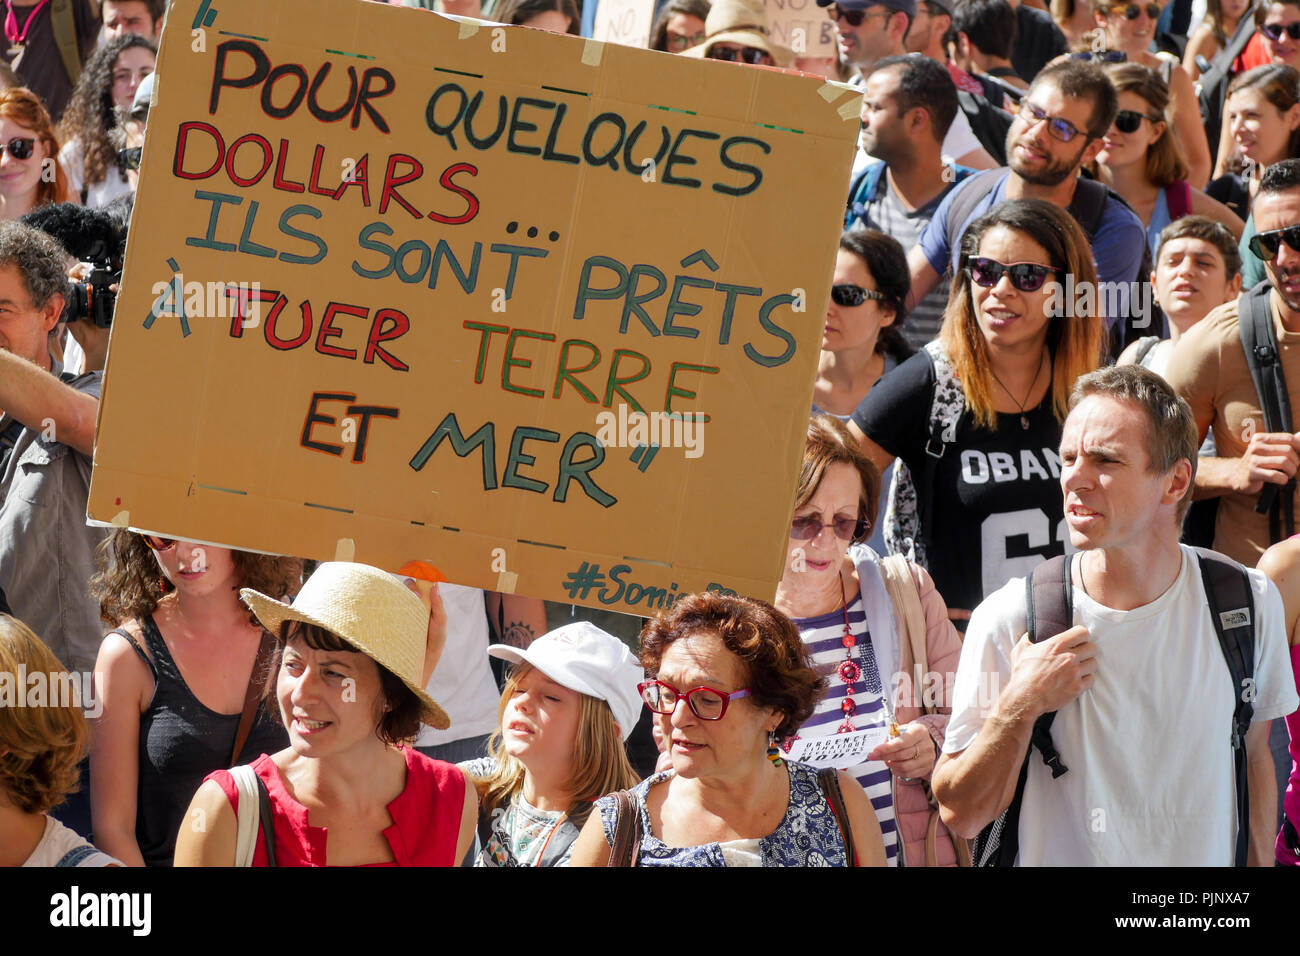 Lyon, France, September 8, 2018: More than 10000 persons gathered in Lyon center (Central Eastern France) on september 8, 2018 and marched during hours to protest against planet heating and claim for the defense of the planet Earth. Credit photo: Serge Mouraret/Alamy Live News Stock Photo